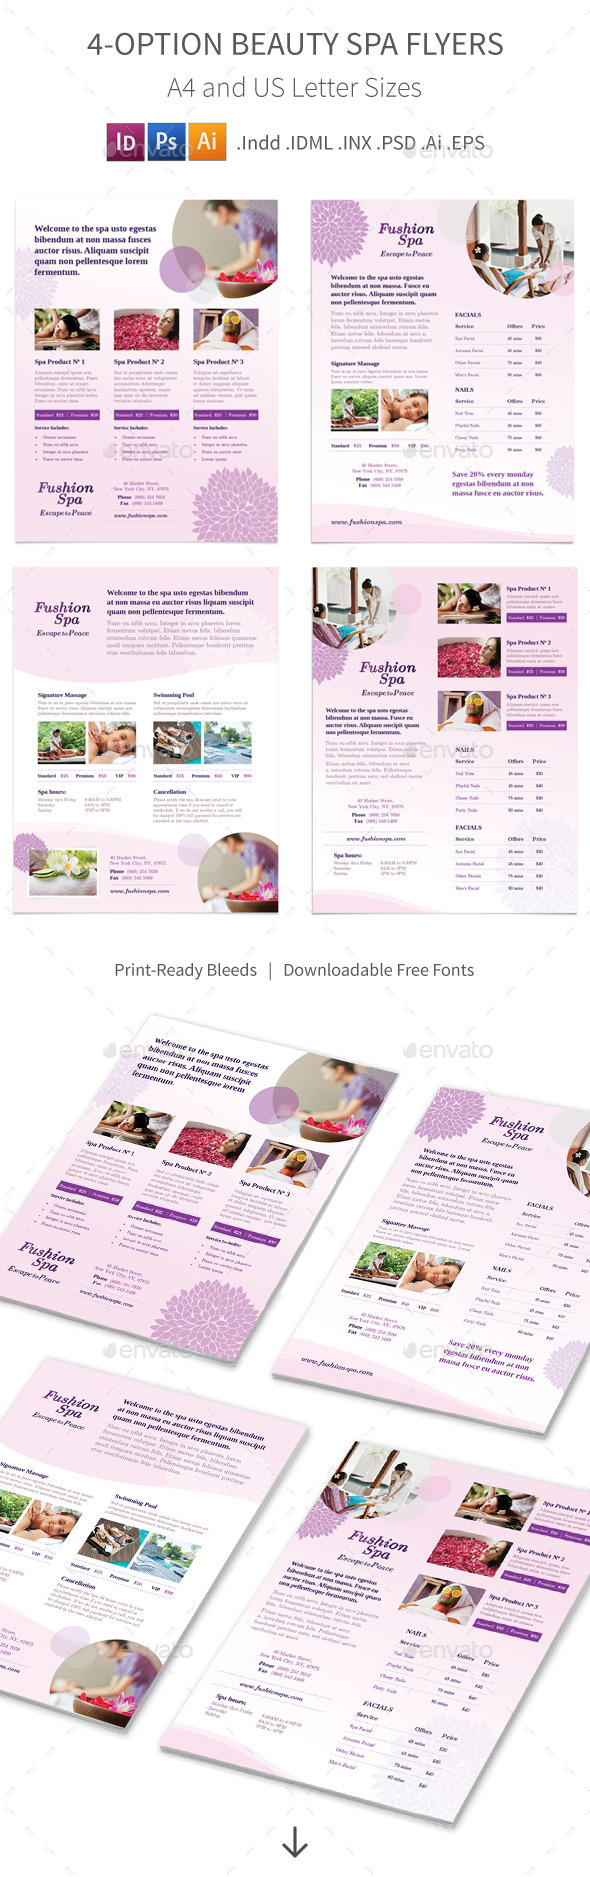 Beauty Spa Flyers 4 Options